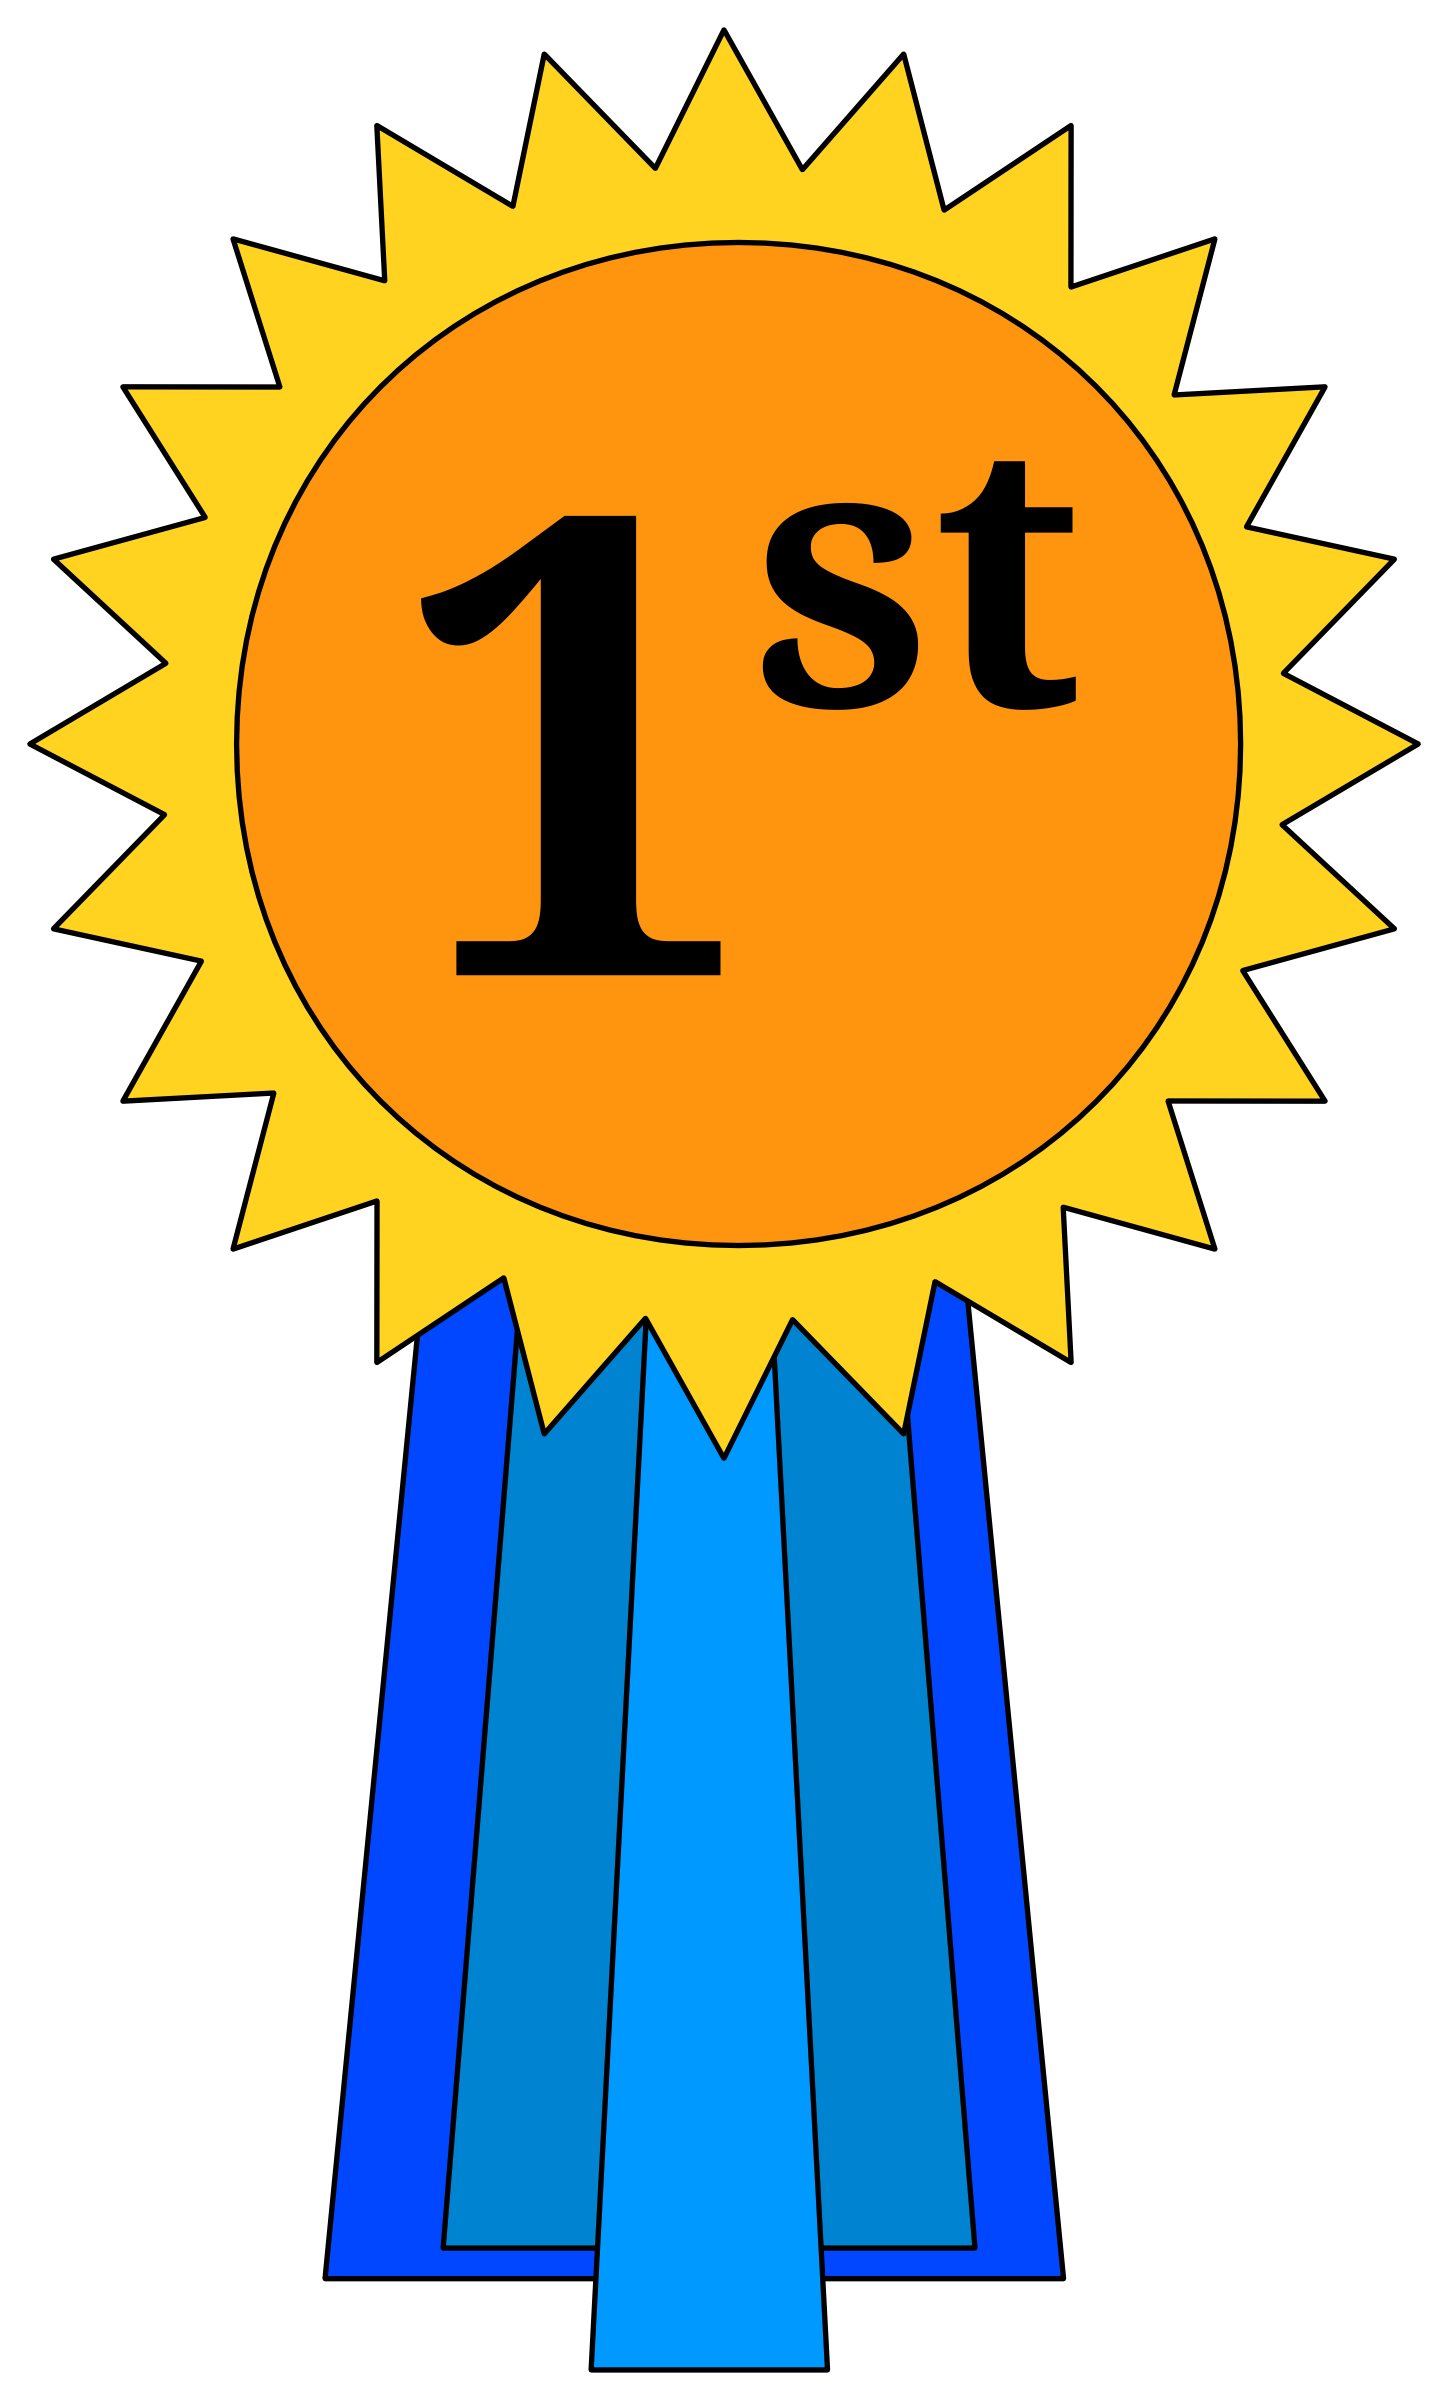 nd place ribbon. Floor clipart 1st